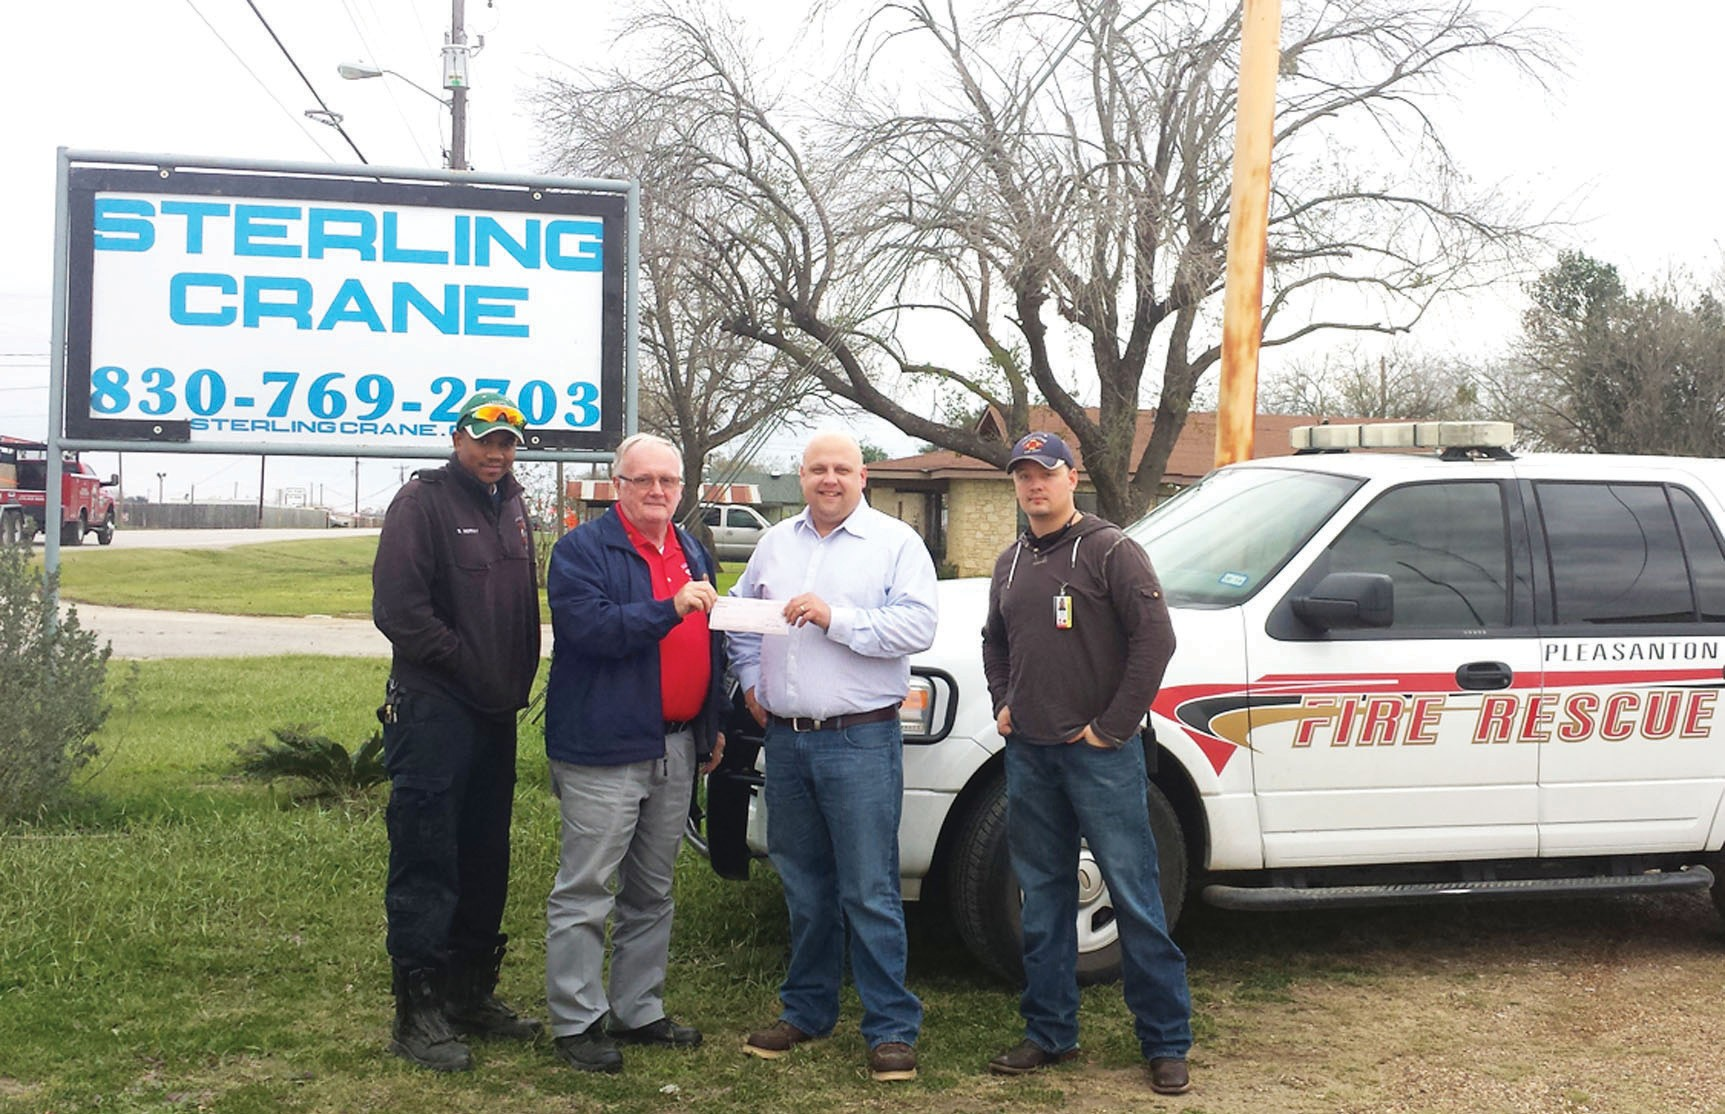 The Pleasanton Fire/Rescue Department received a donation of $500.00 from Sterling Crane. Left to right are: Lt. Sheridan Murray, Chief Chuck Garris, Sterling Branch Manager Aaron Heinze and Sterling Crane Operator/Fire Volunteer Richard Capps.